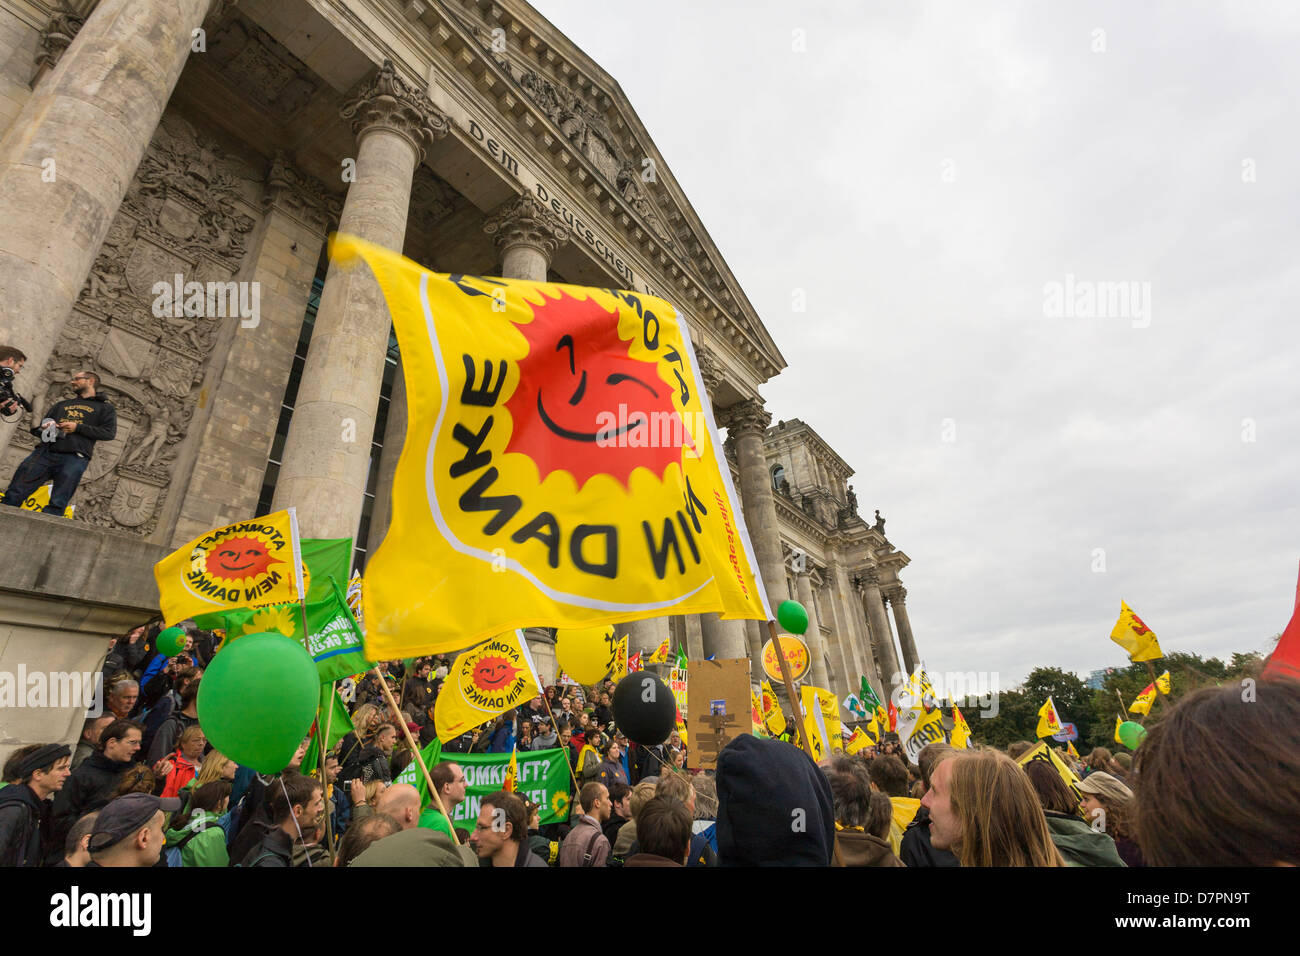 anti-nuclear demonstration in government district, here in front of Reichstag building or Bundestag the parliament, Stock Photo